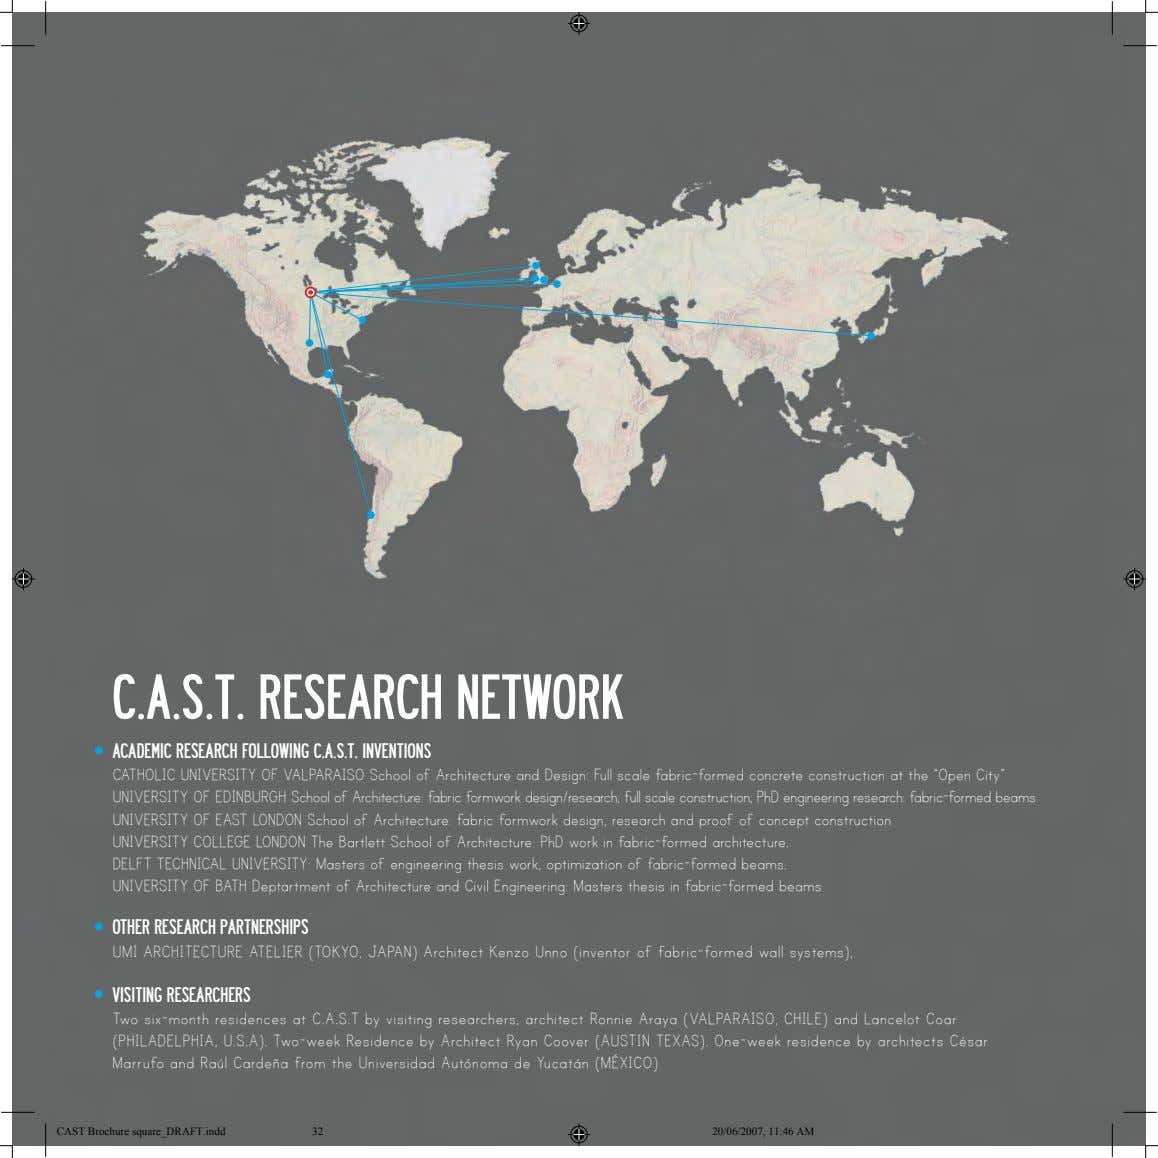 C.A.S.T. RESEARCH NETWORK ACADEMIC RESEARCH FOLLOWING C.A.S.T. INVENTIONS CATHOLIC UNIVERSITY OF VALPARAISO School of